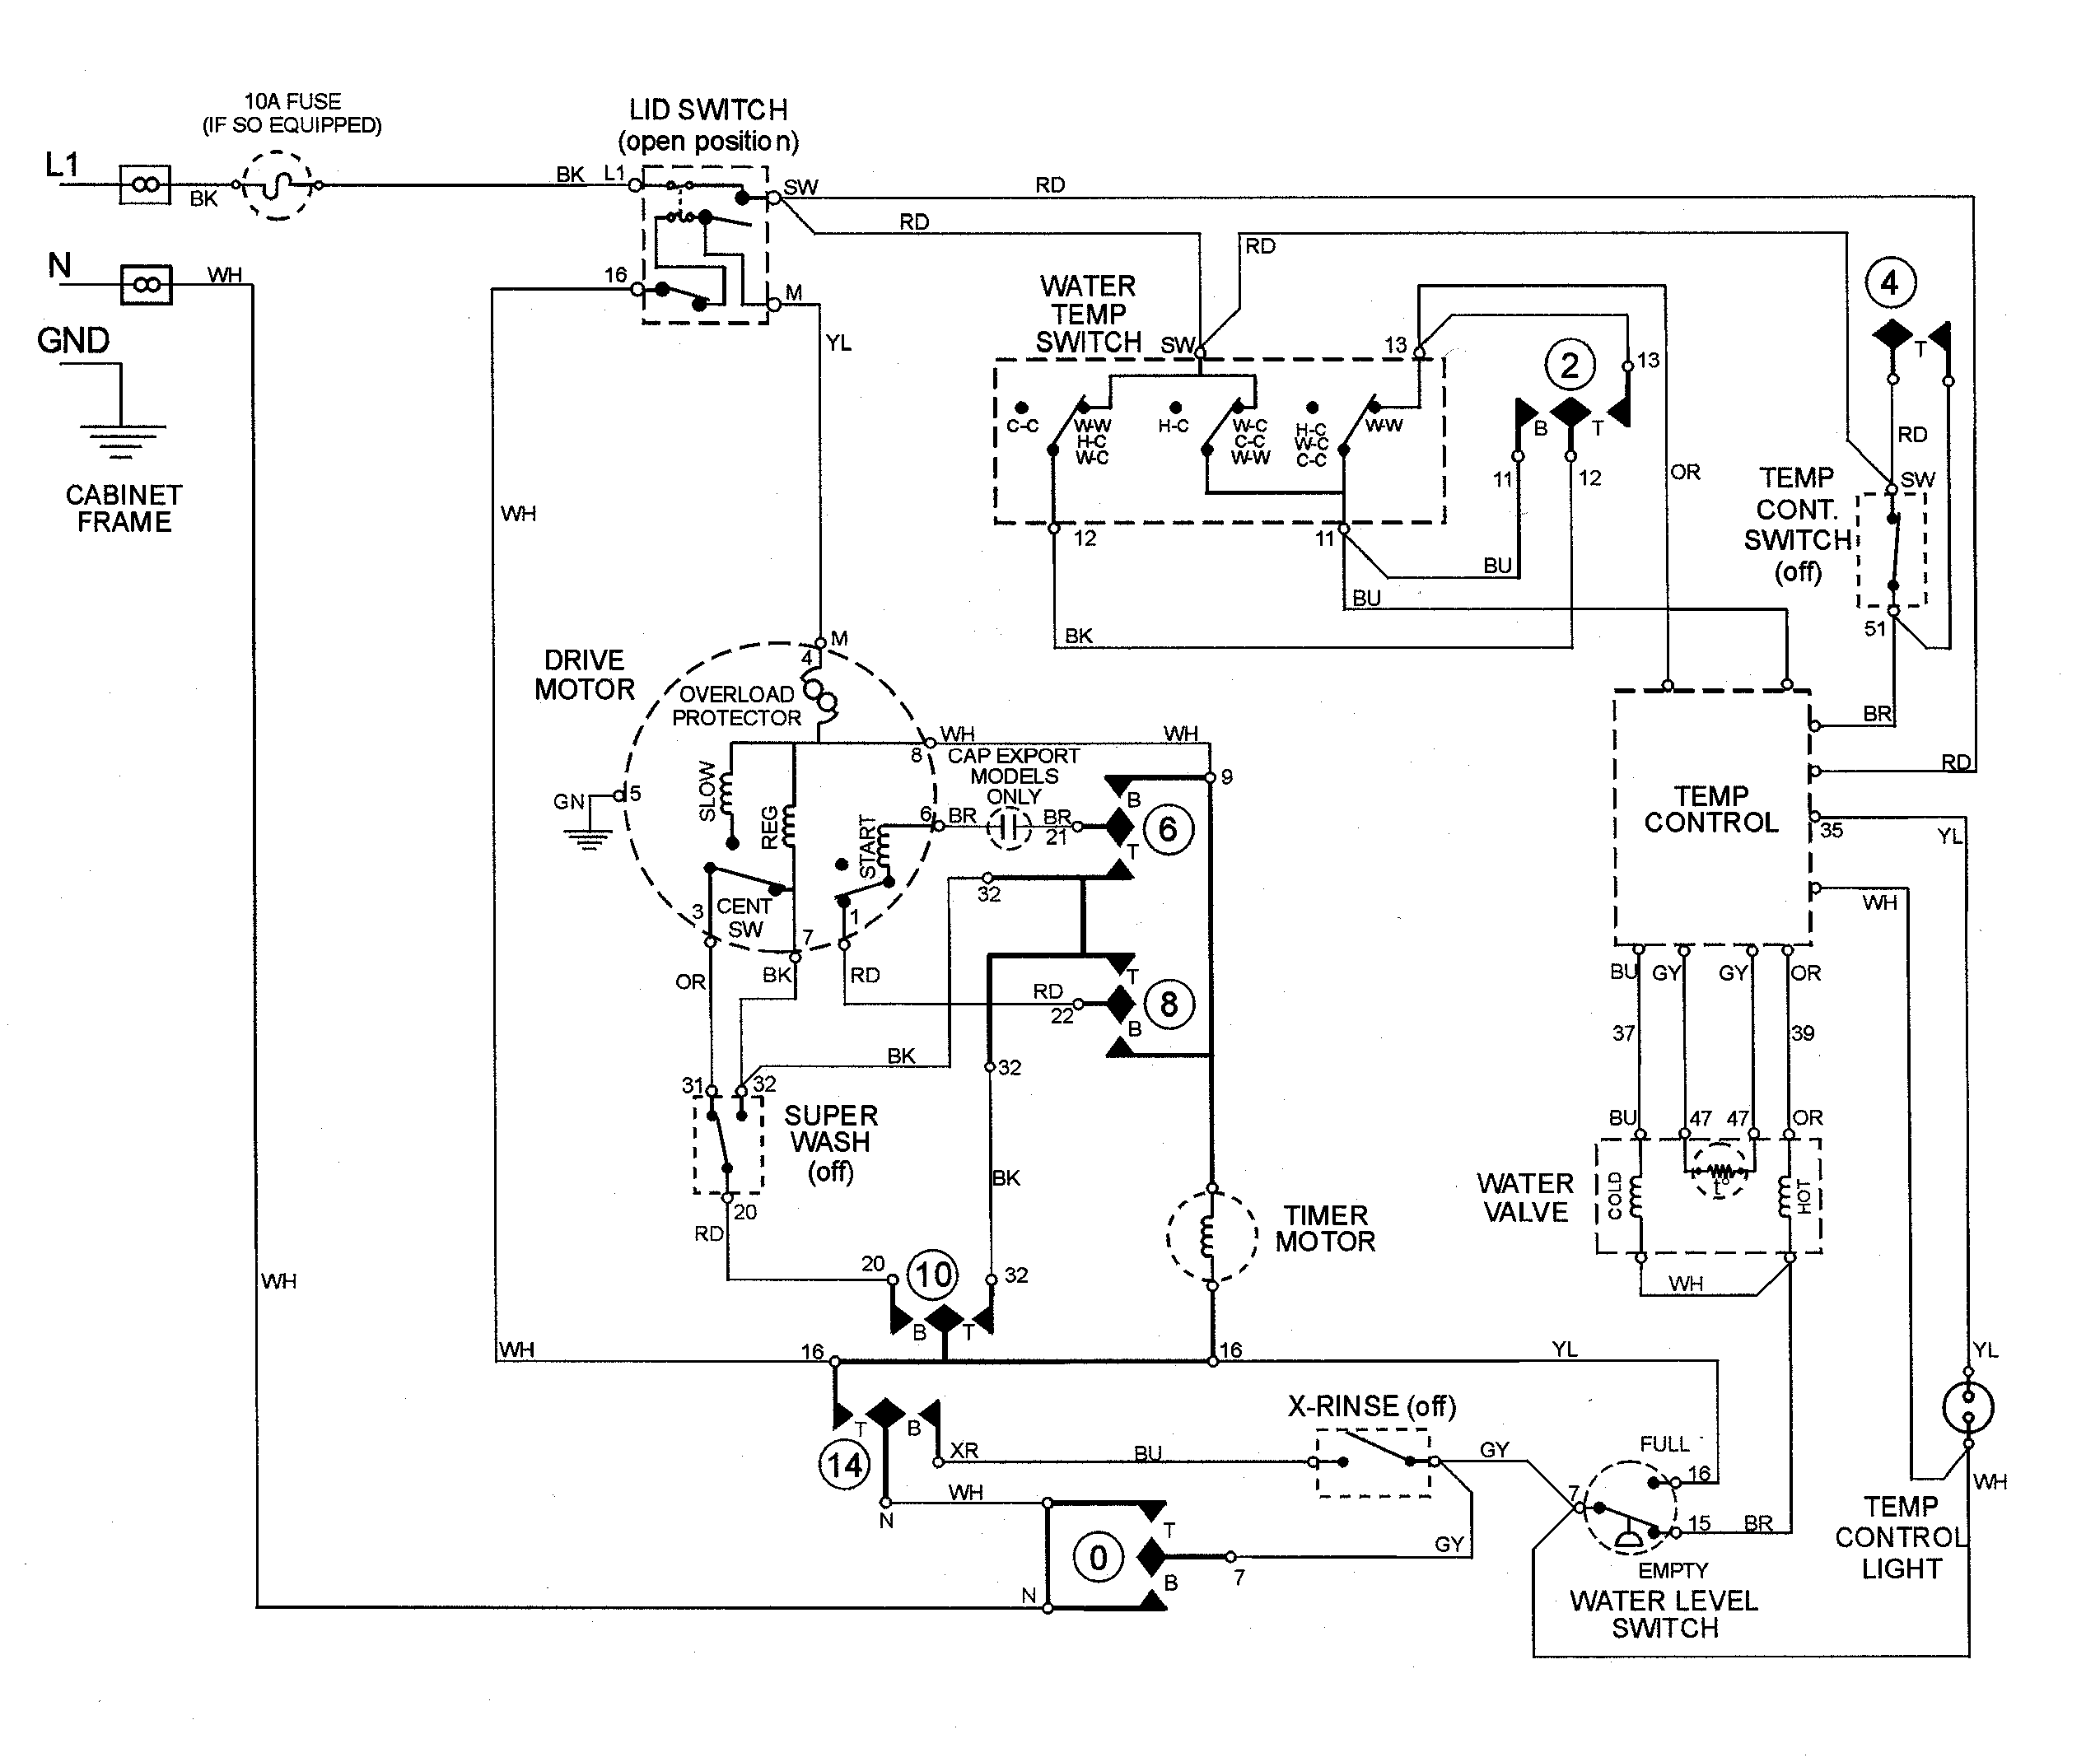 ge washing machine motor wiring diagram ge wiring diagram and rh pinterest  com Washing Machine Schematic